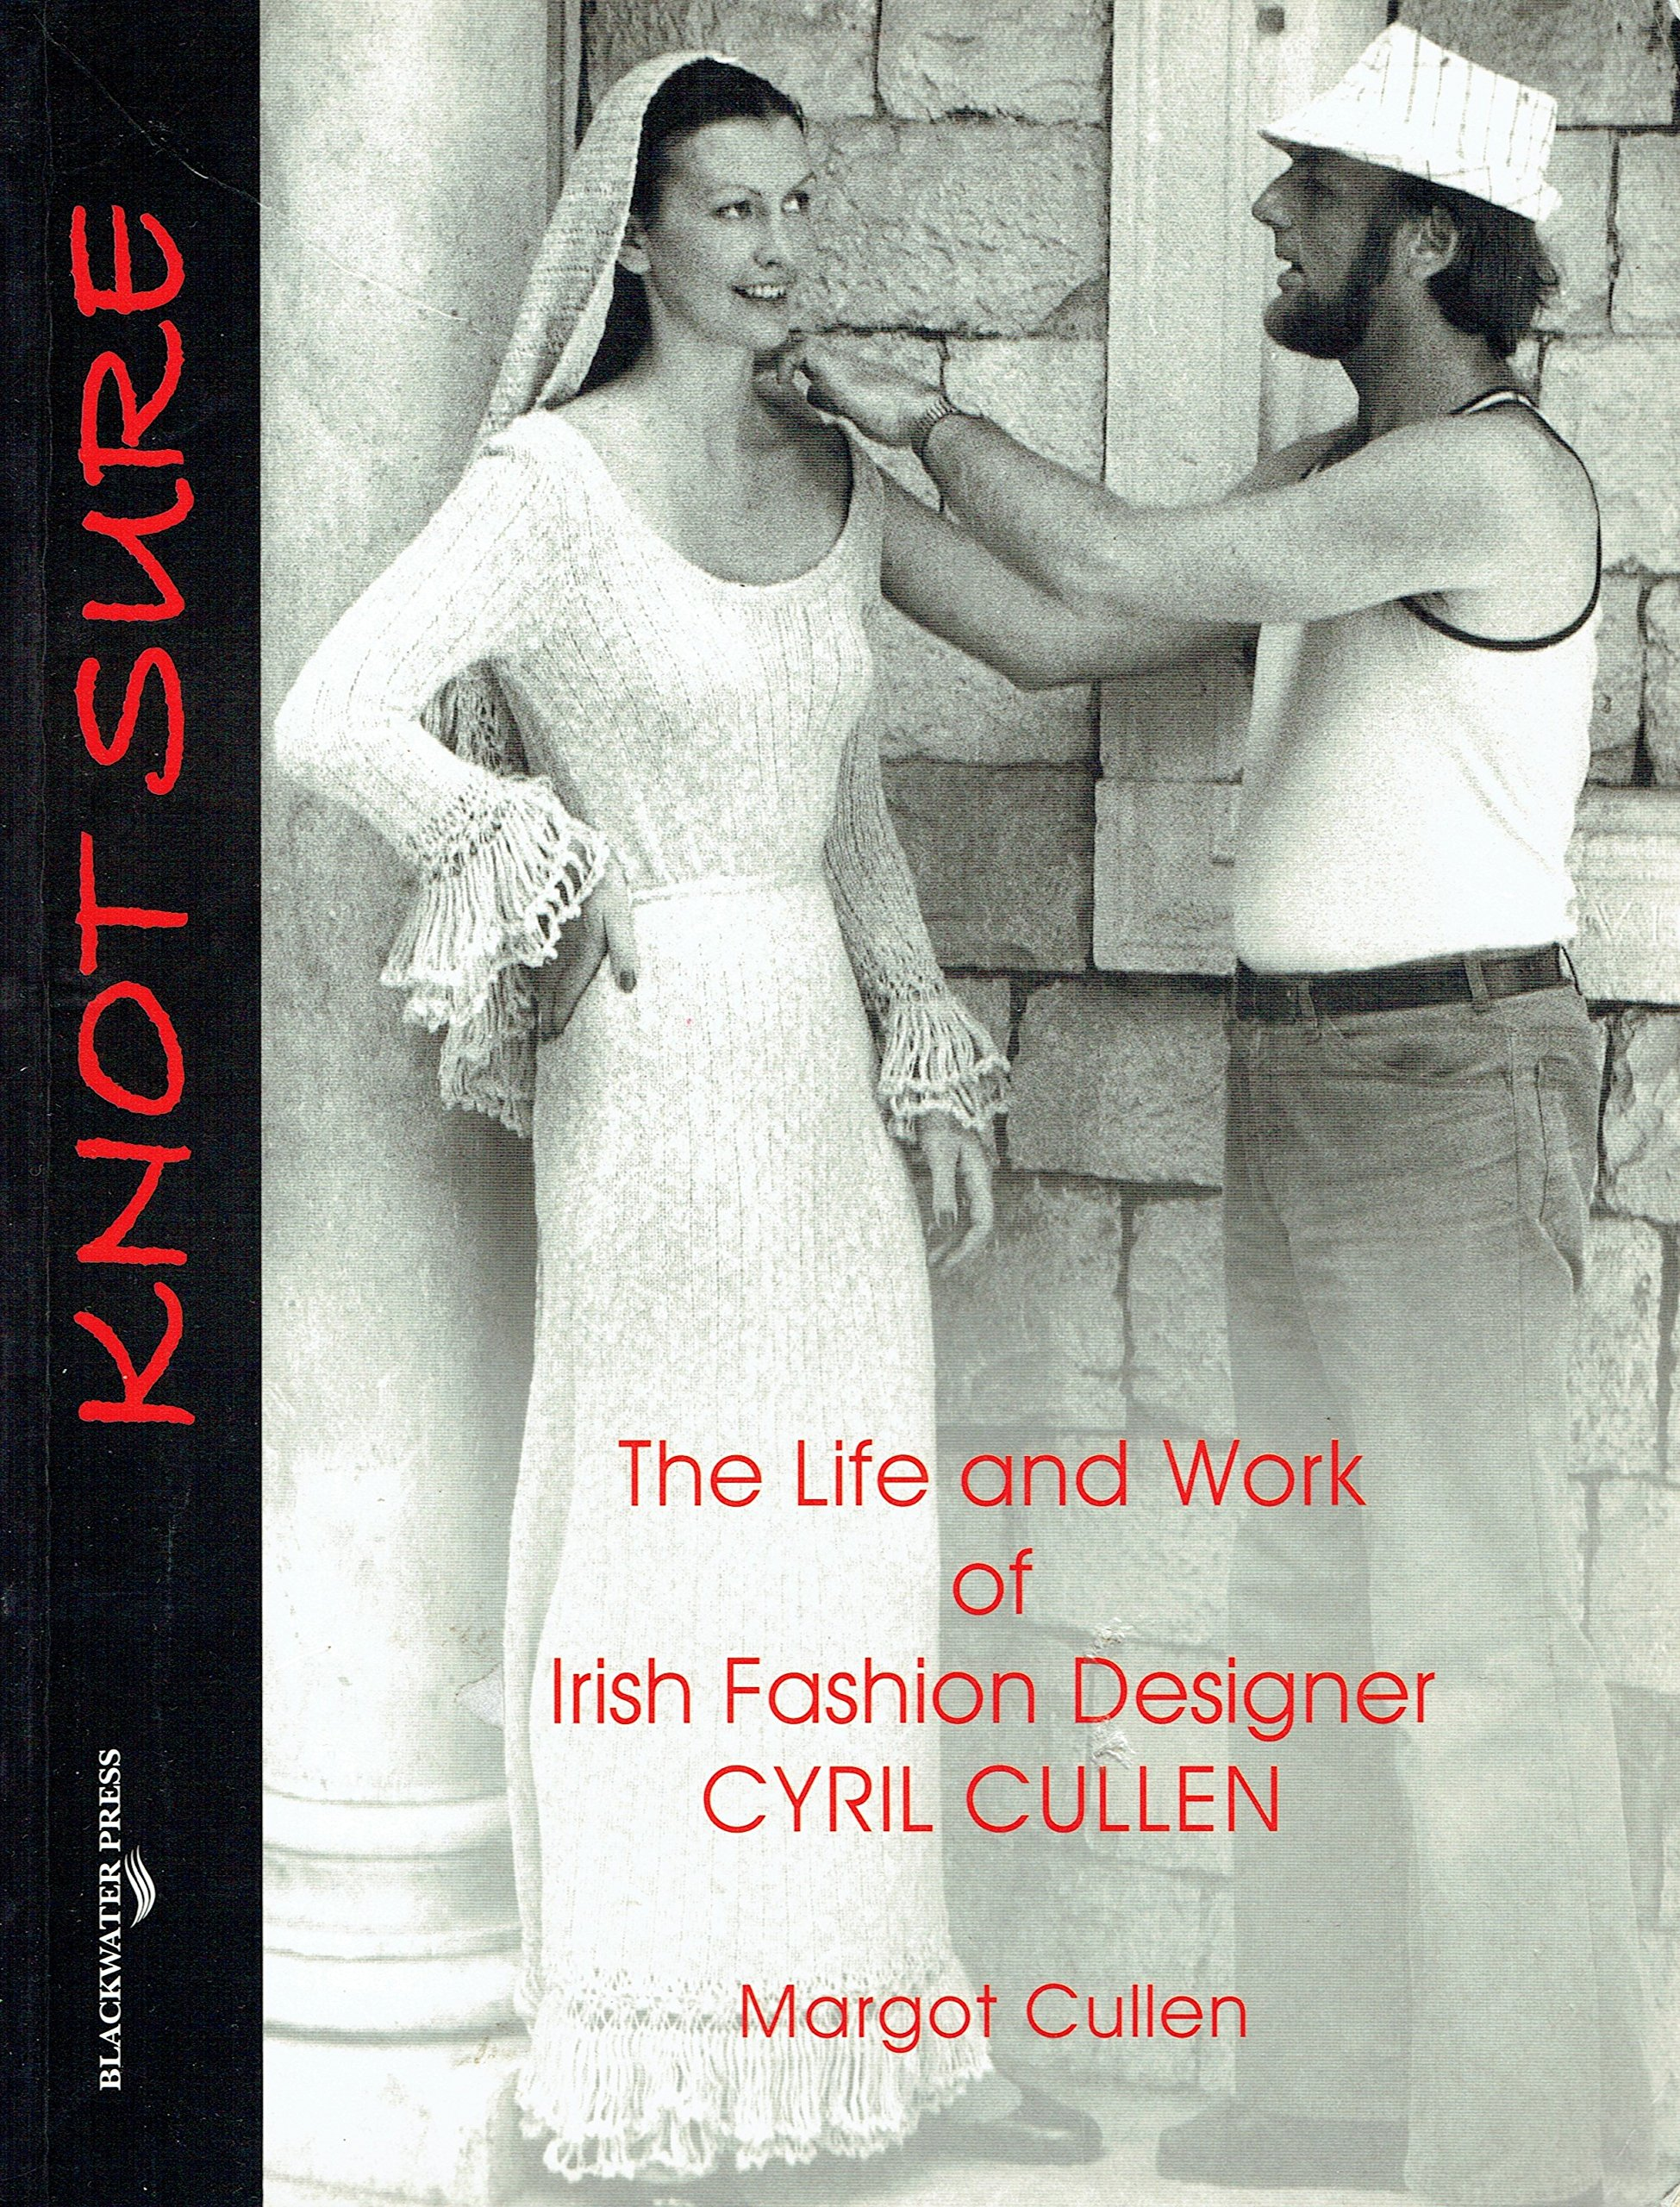 Knot Sure The Life And Work Of Irish Fashion Designer Cyril Cullen Margo Cullen 9781841317021 Amazon Com Books